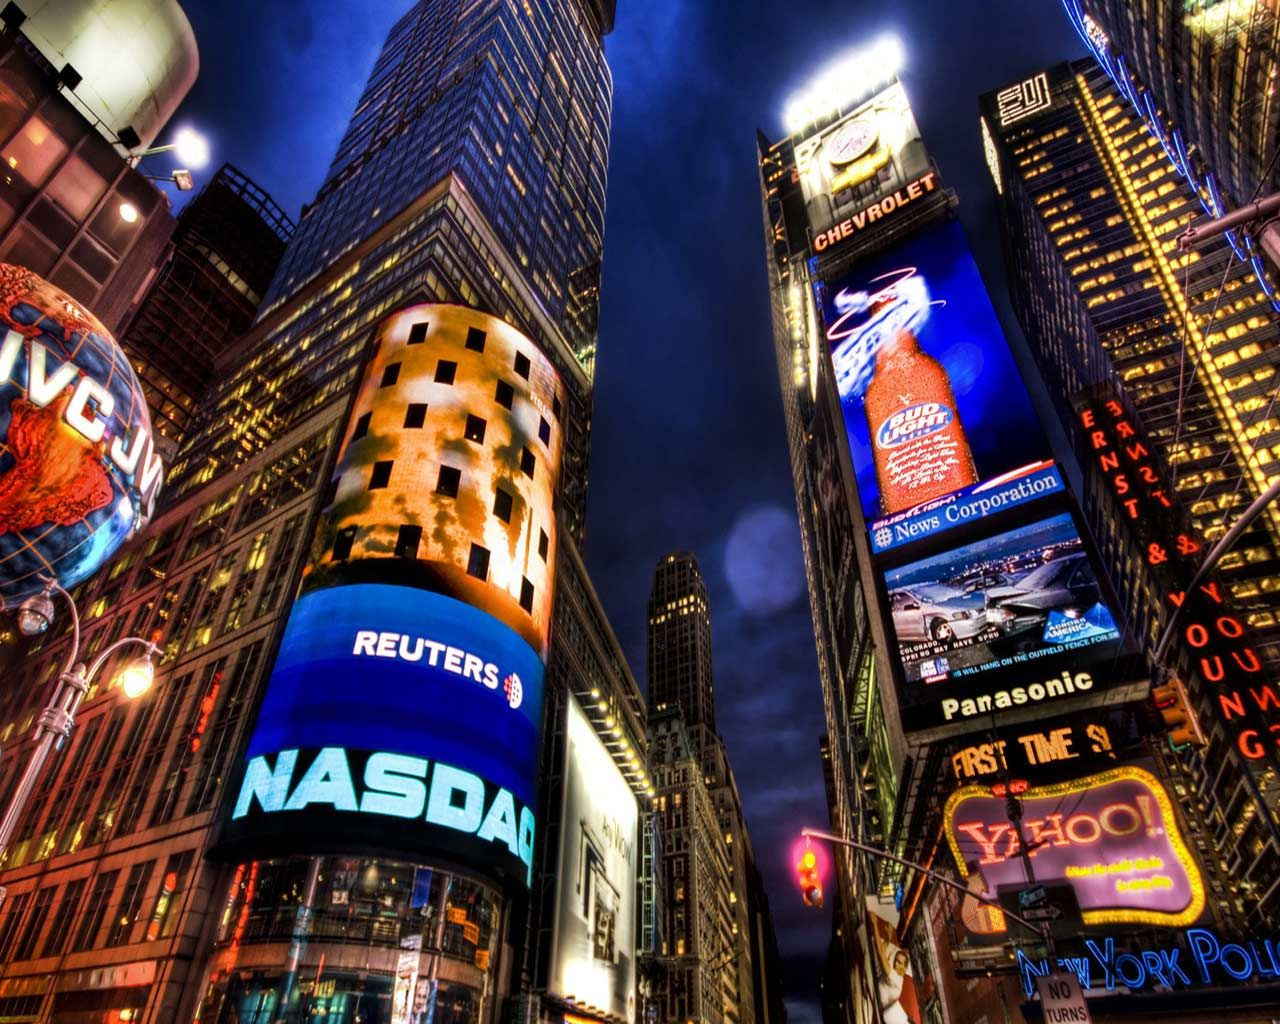 Hd wallpapers widescreen 1080p 3d view full size more for New york 3d wallpaper